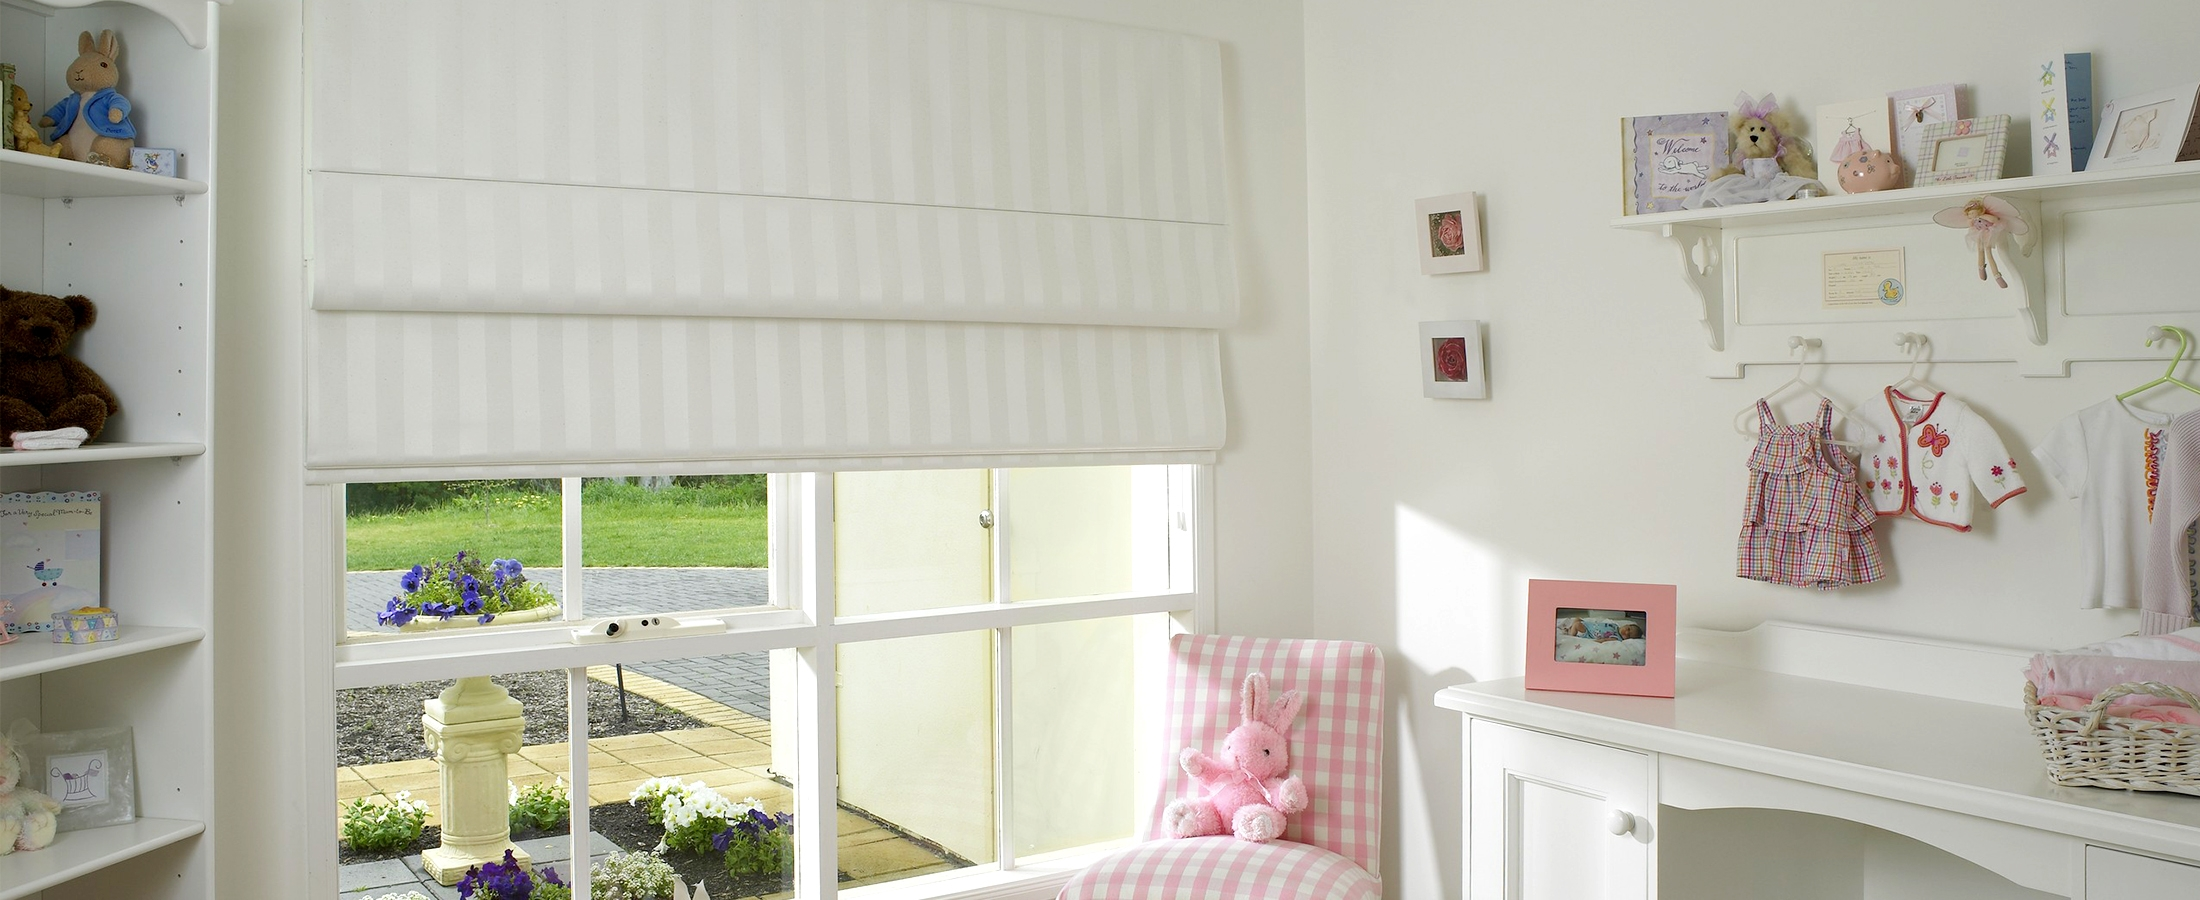 Superior Roman Blinds Perth Abc Blinds Biggest Best Inside Pattern Blinds (View 9 of 15)